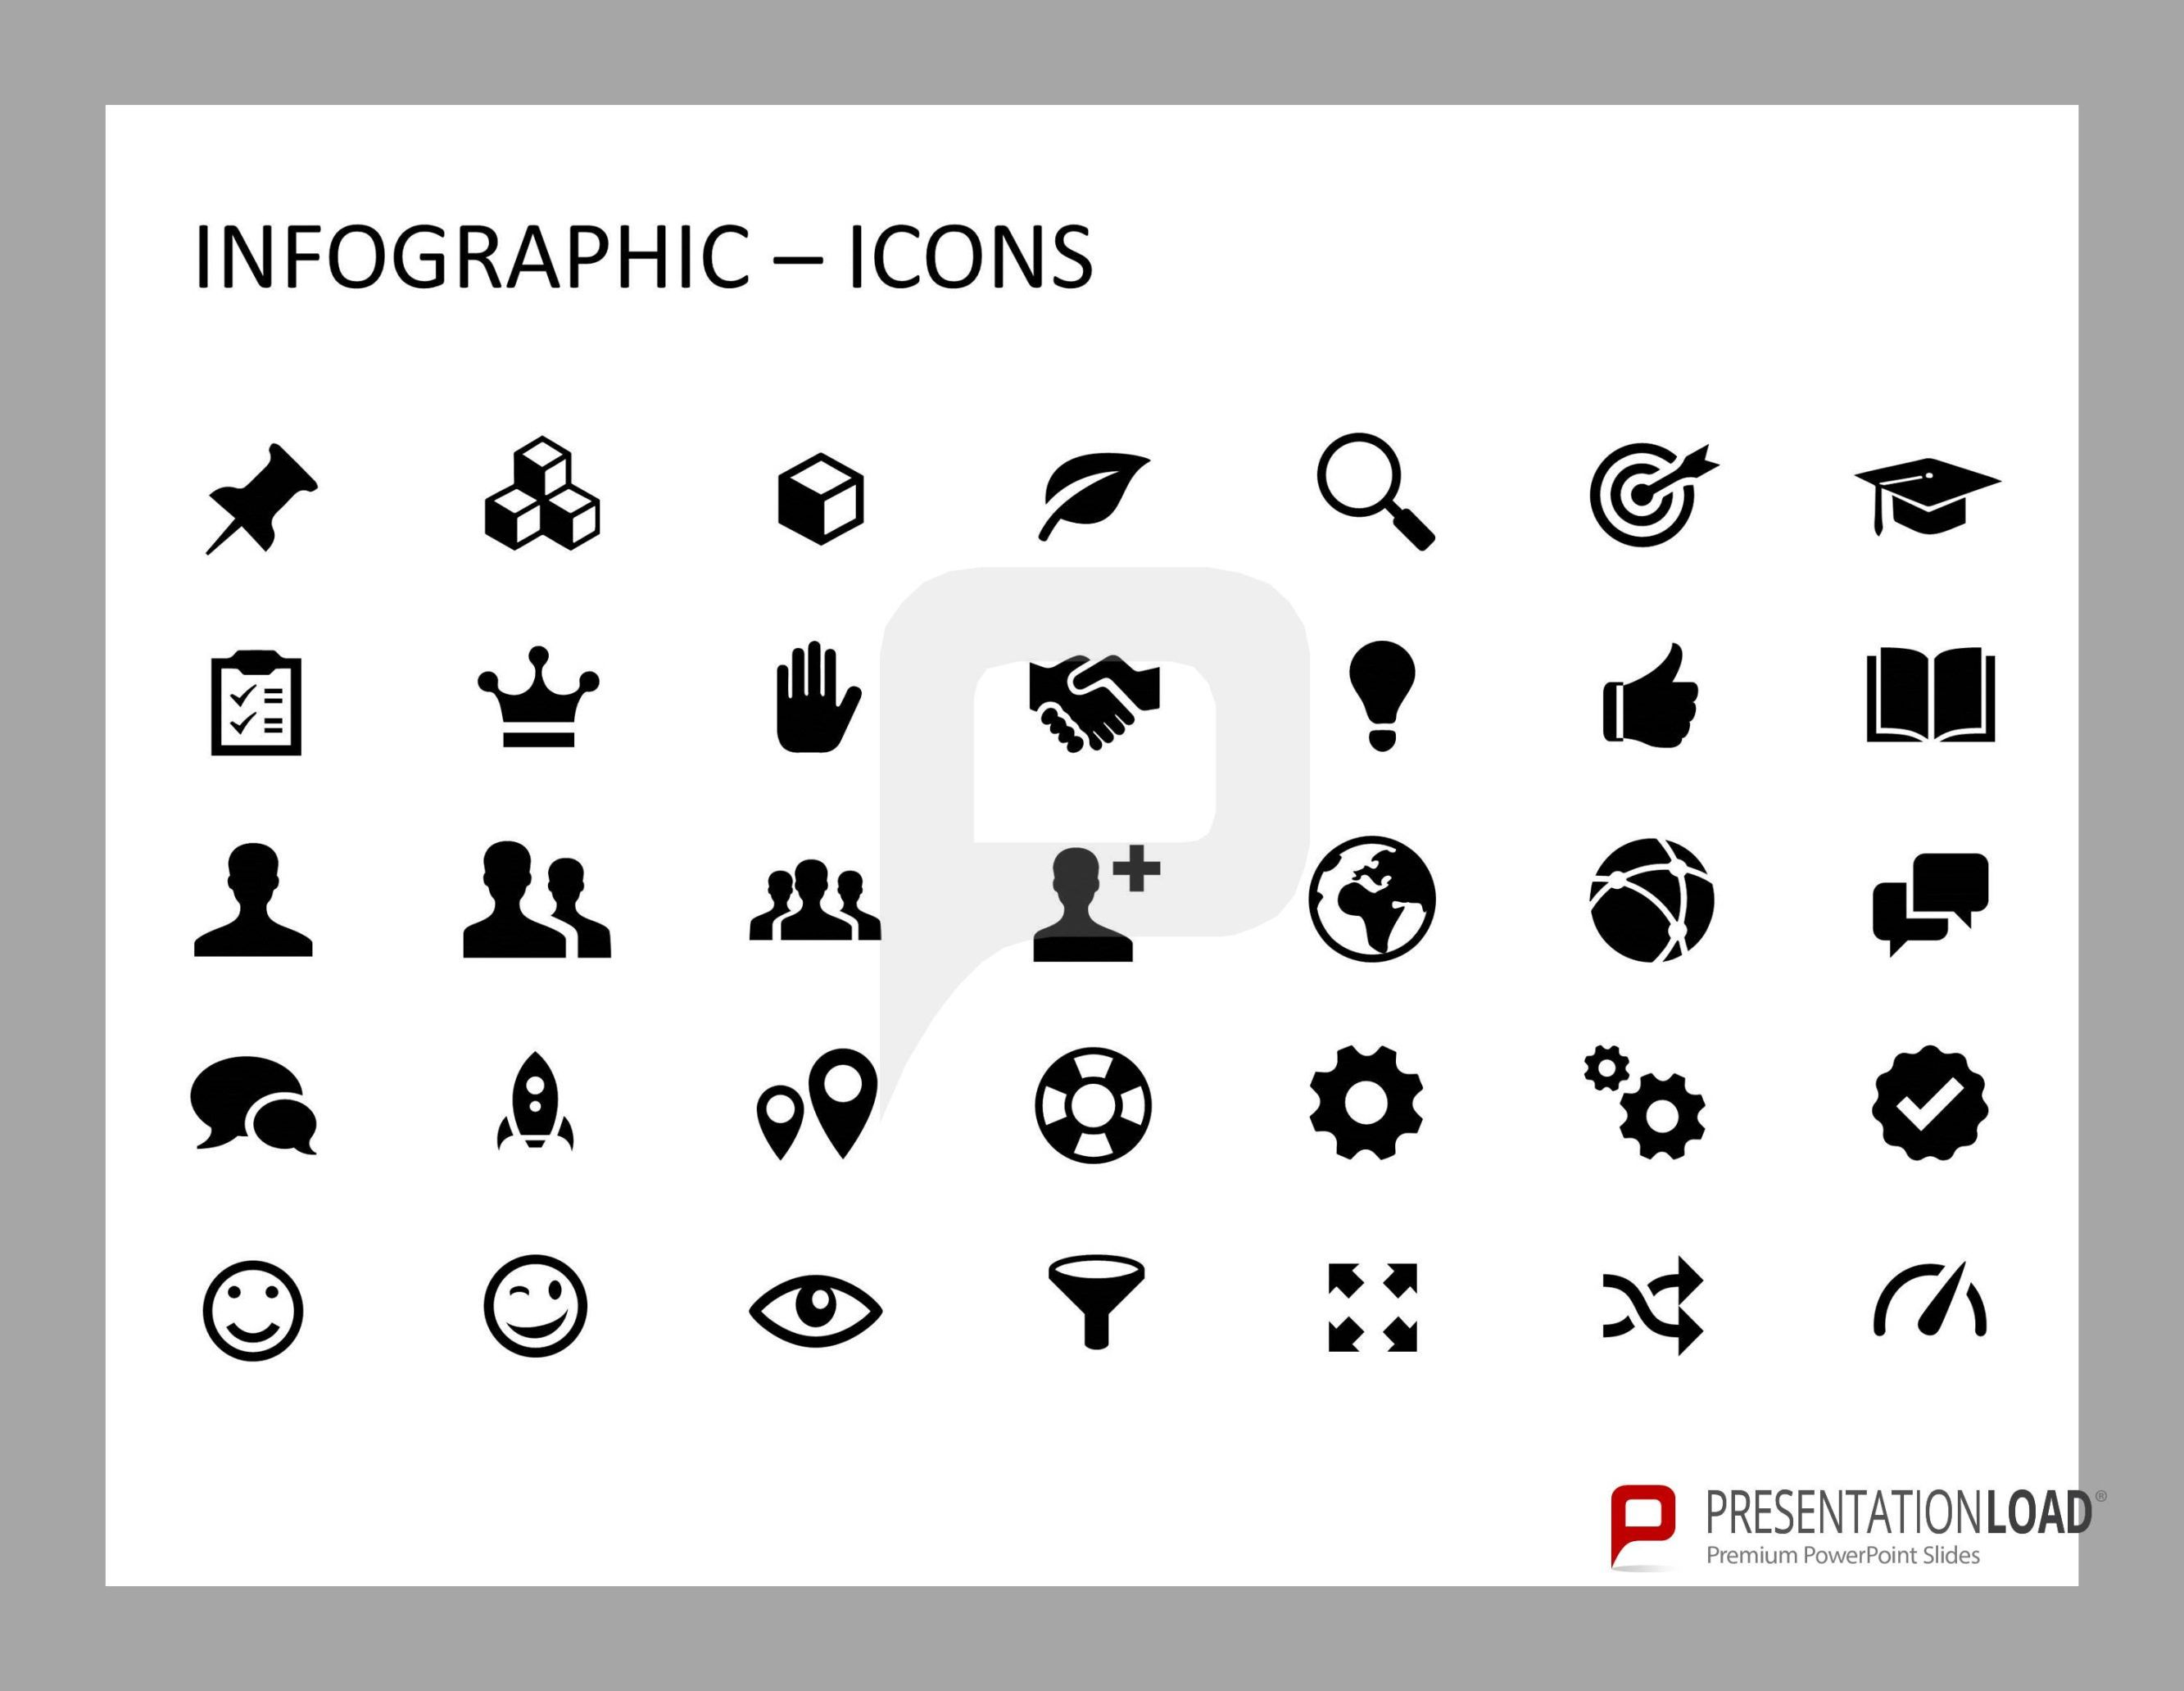 This set of infographic PowerPoint templates includes a